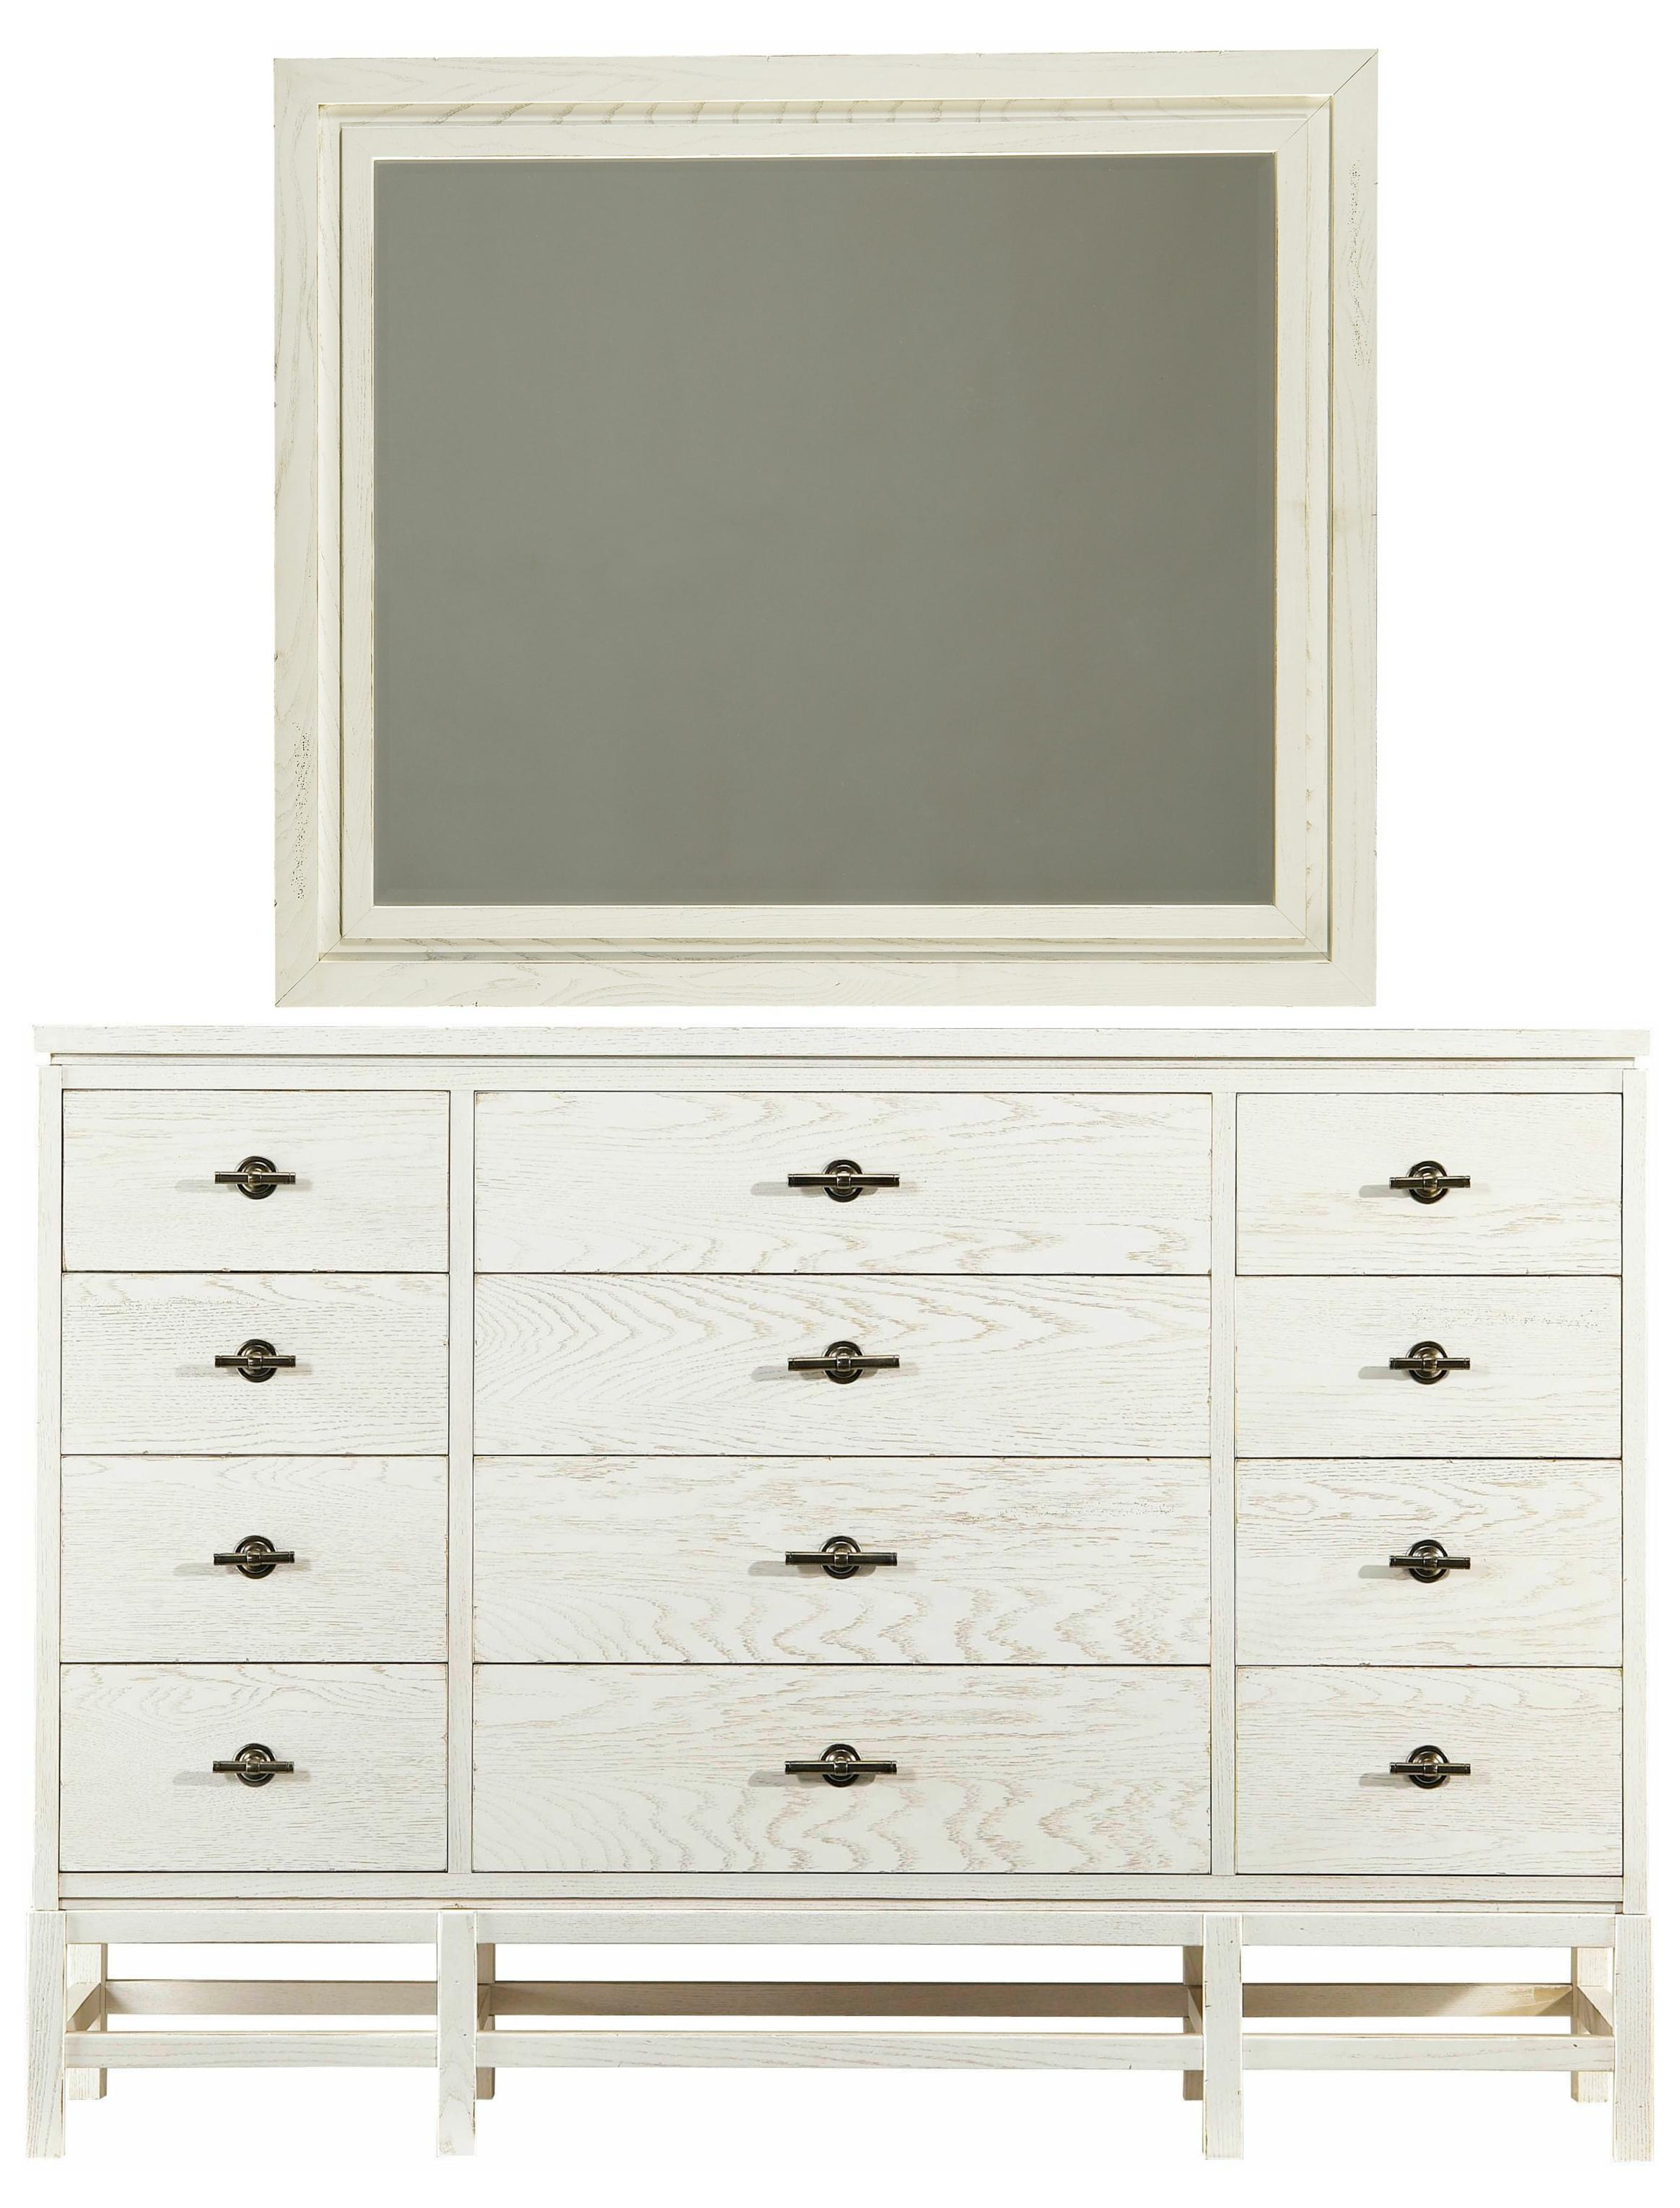 Stanley Furniture Coastal Living Resort Tranquility Isle Dresser & Day's End Mirror - Item Number: 062-A3-06+31